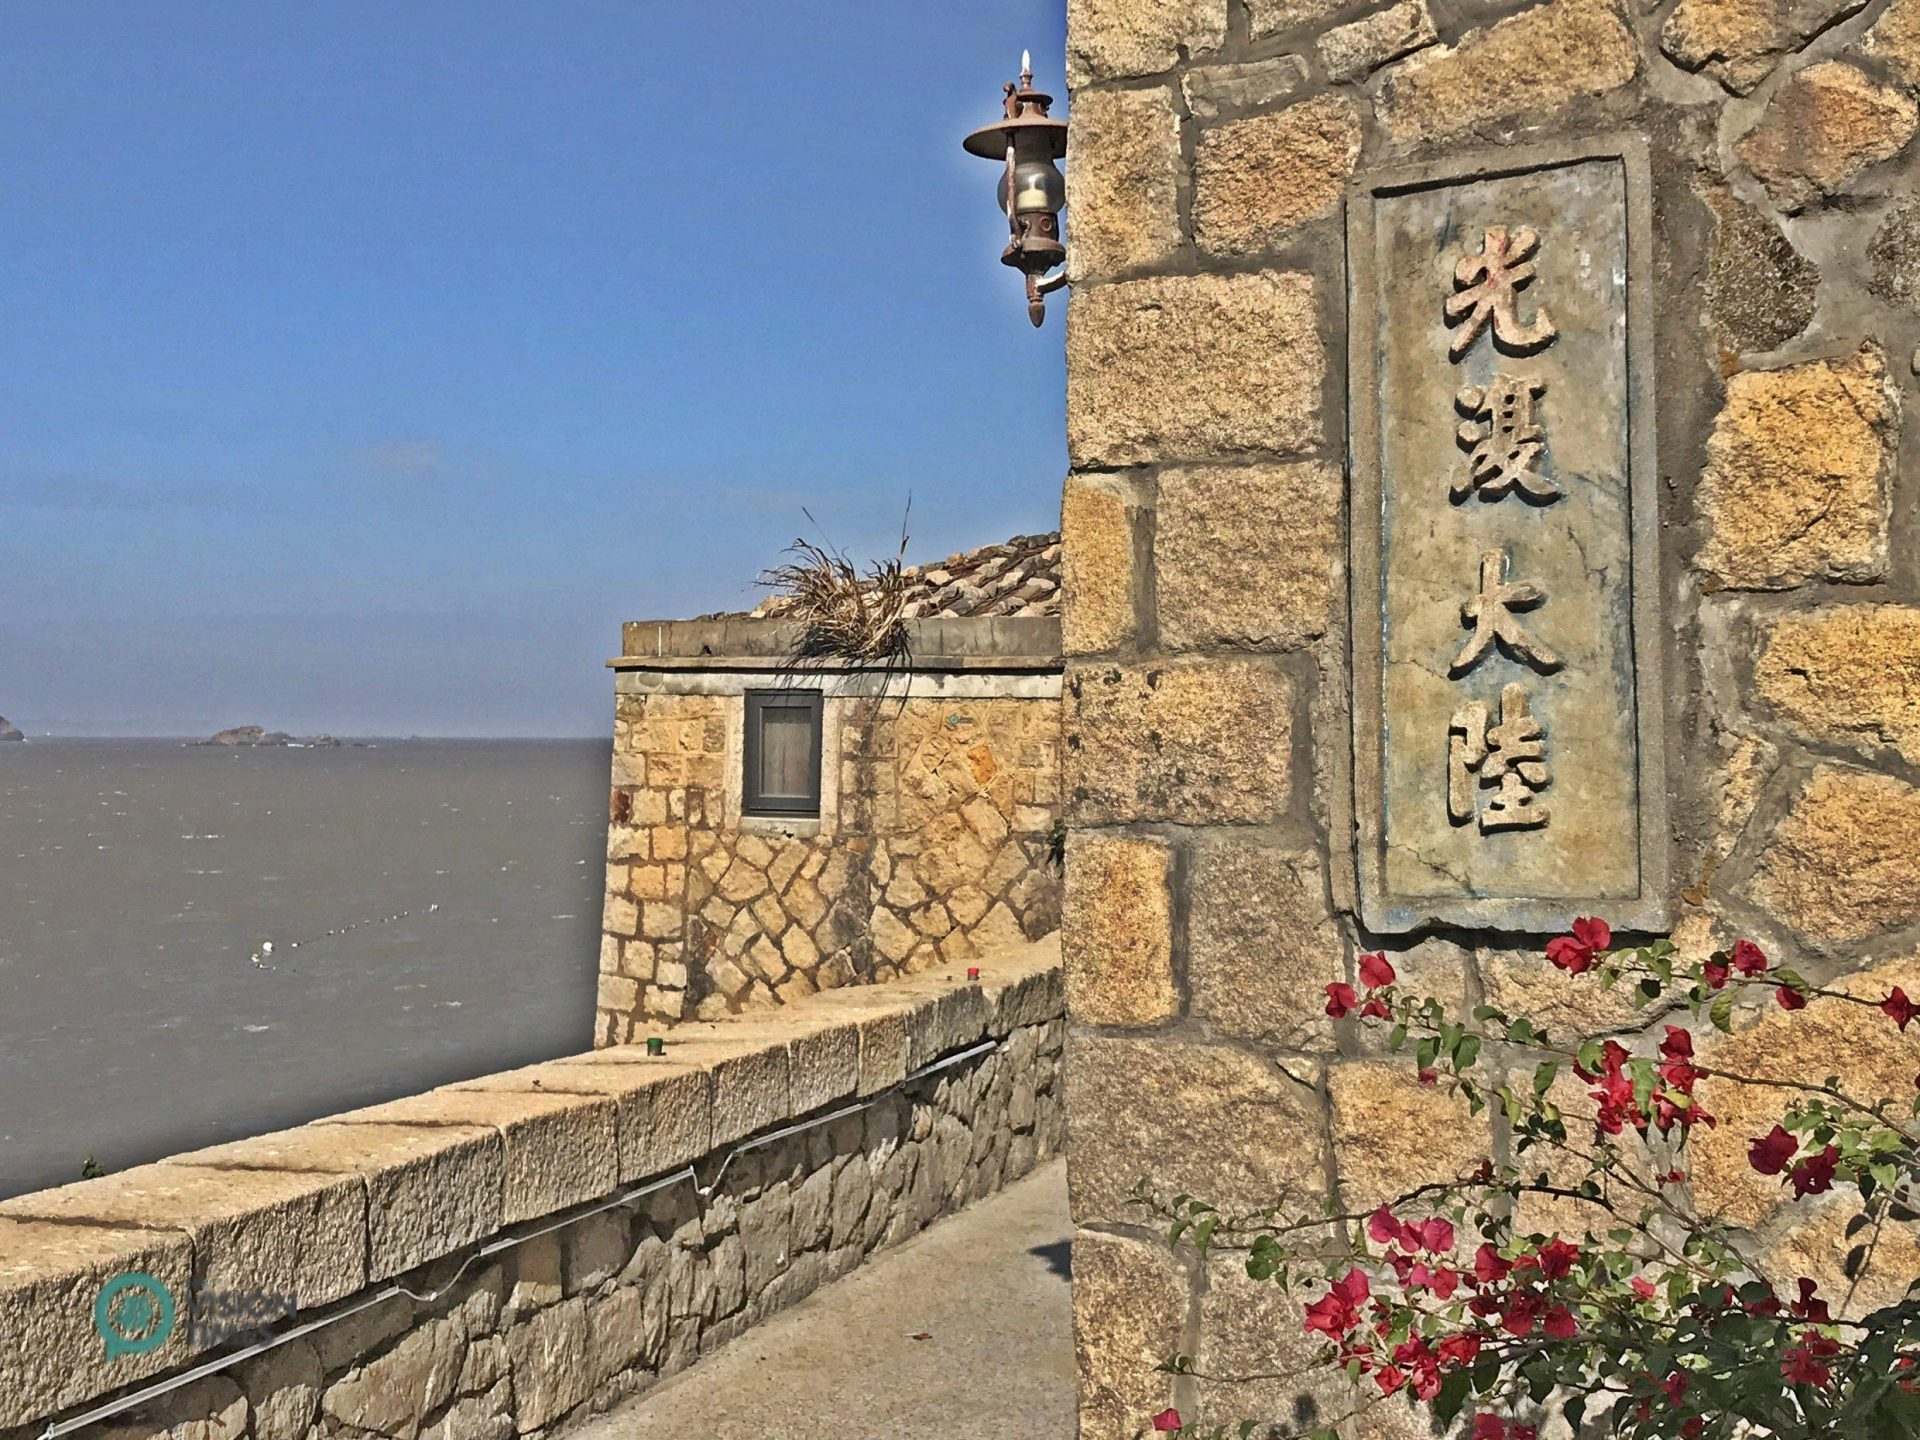 """The old stone house with the anti-Communist slogan on the wall reading """"Recover the Mainland"""" in Matsu's Beigan Island. (Image: Julia Fu / Vision Times)"""